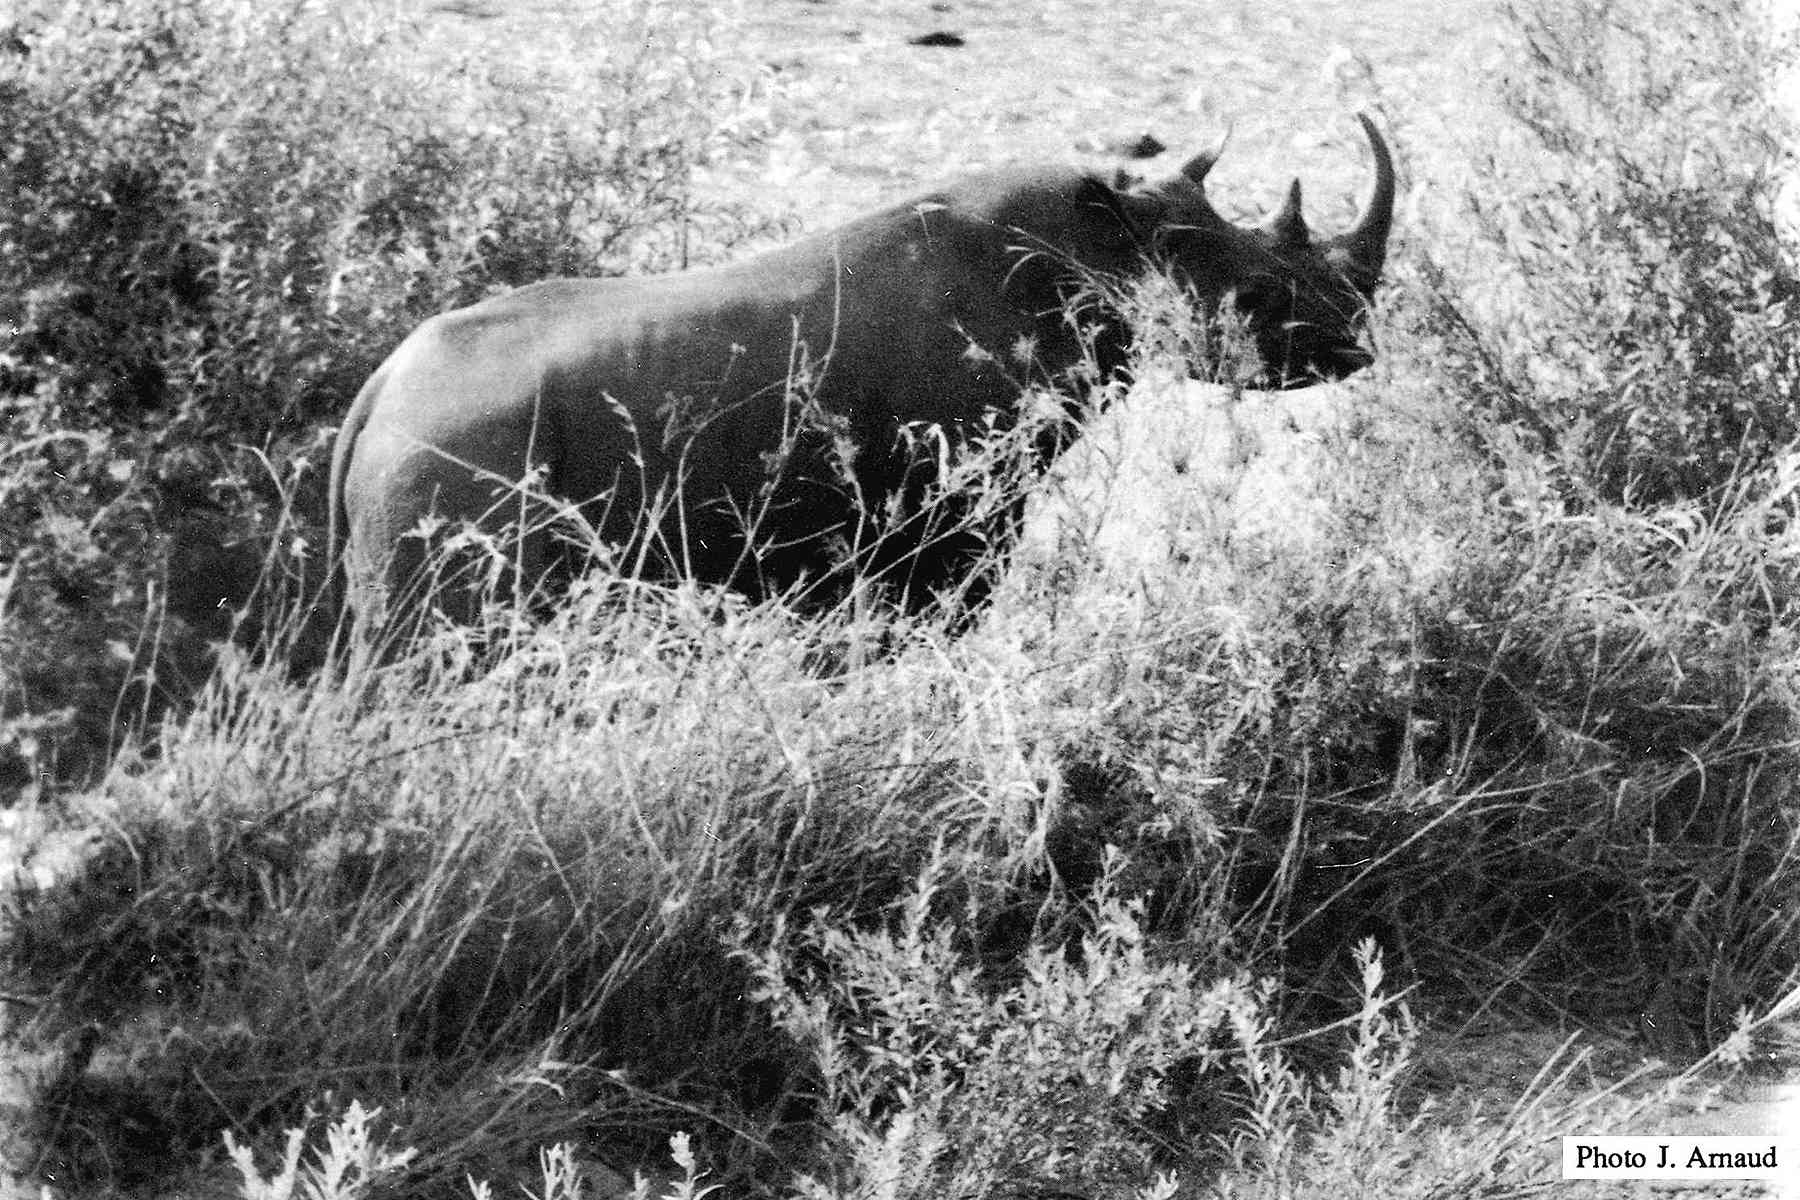 historic black and white photo of extinct Western Black Rhino in Cameroon